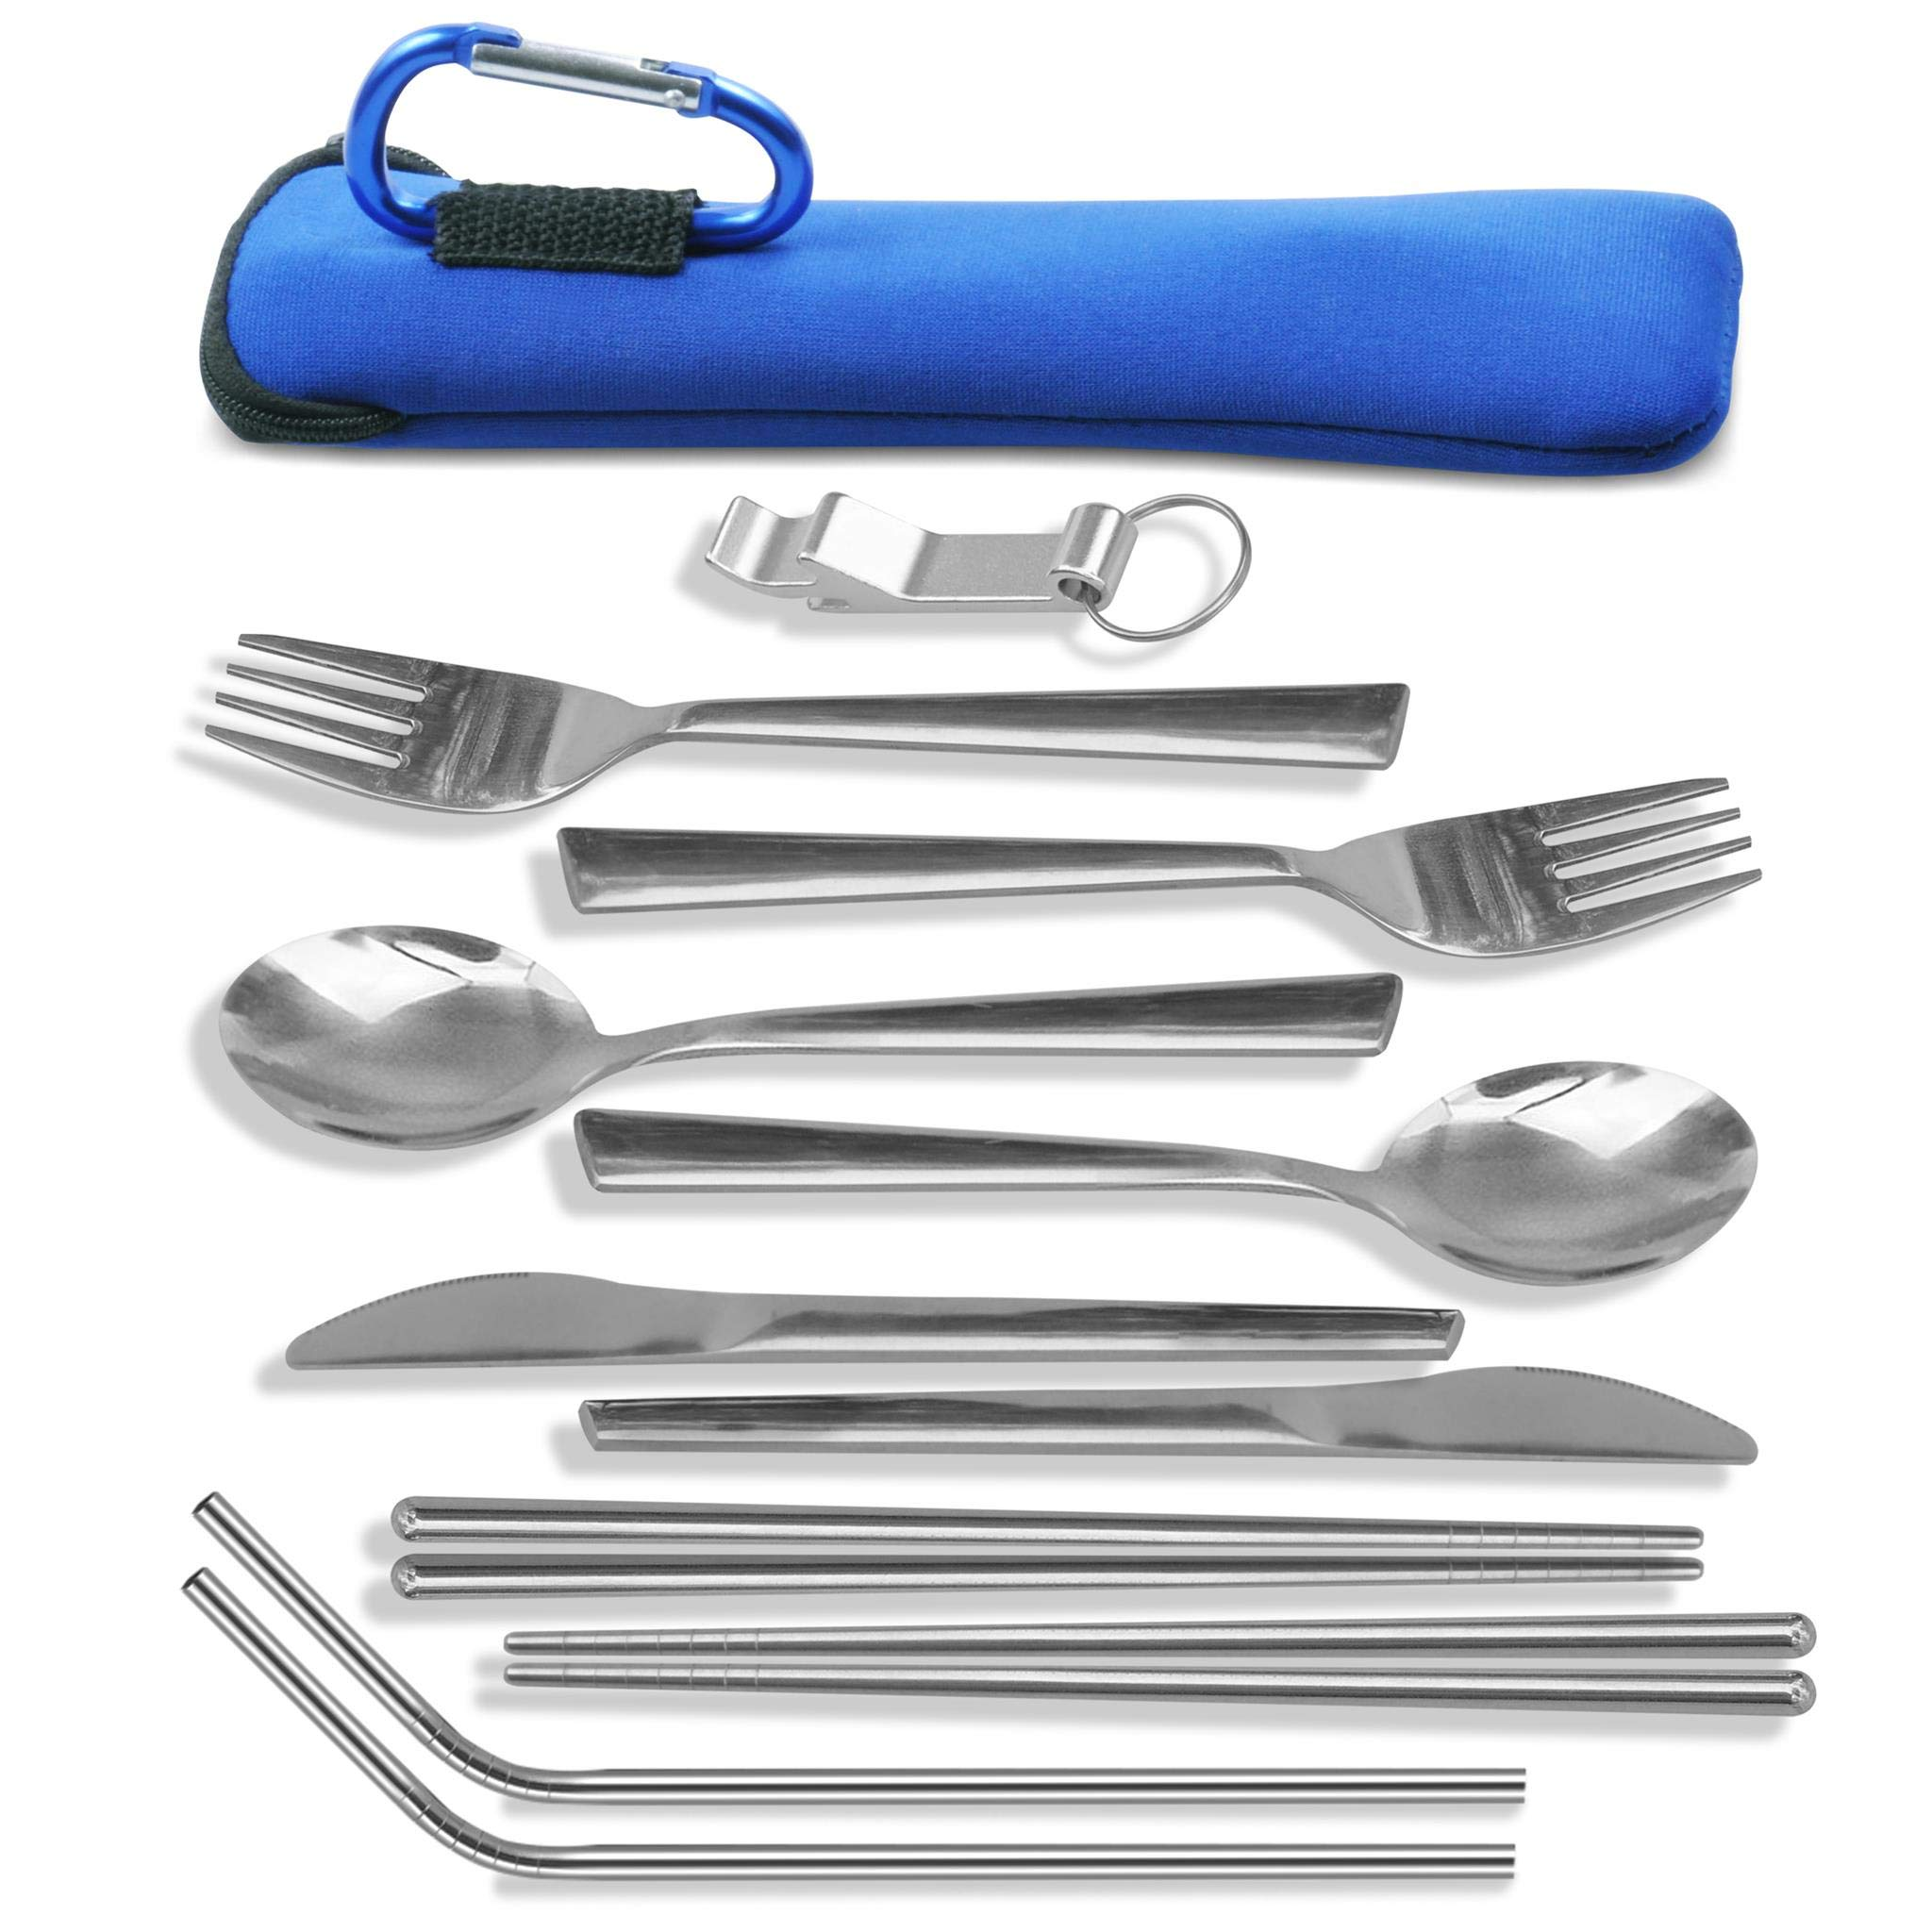 Unbreakable Camping Eating Utensils Kit - 2-Person Stainless Steel Utensils Set - Portable Mess Kit With Neoprene Case, Backpack Hanging Carabiner, Chopsticks & Bottle Opener (with 2 straws)